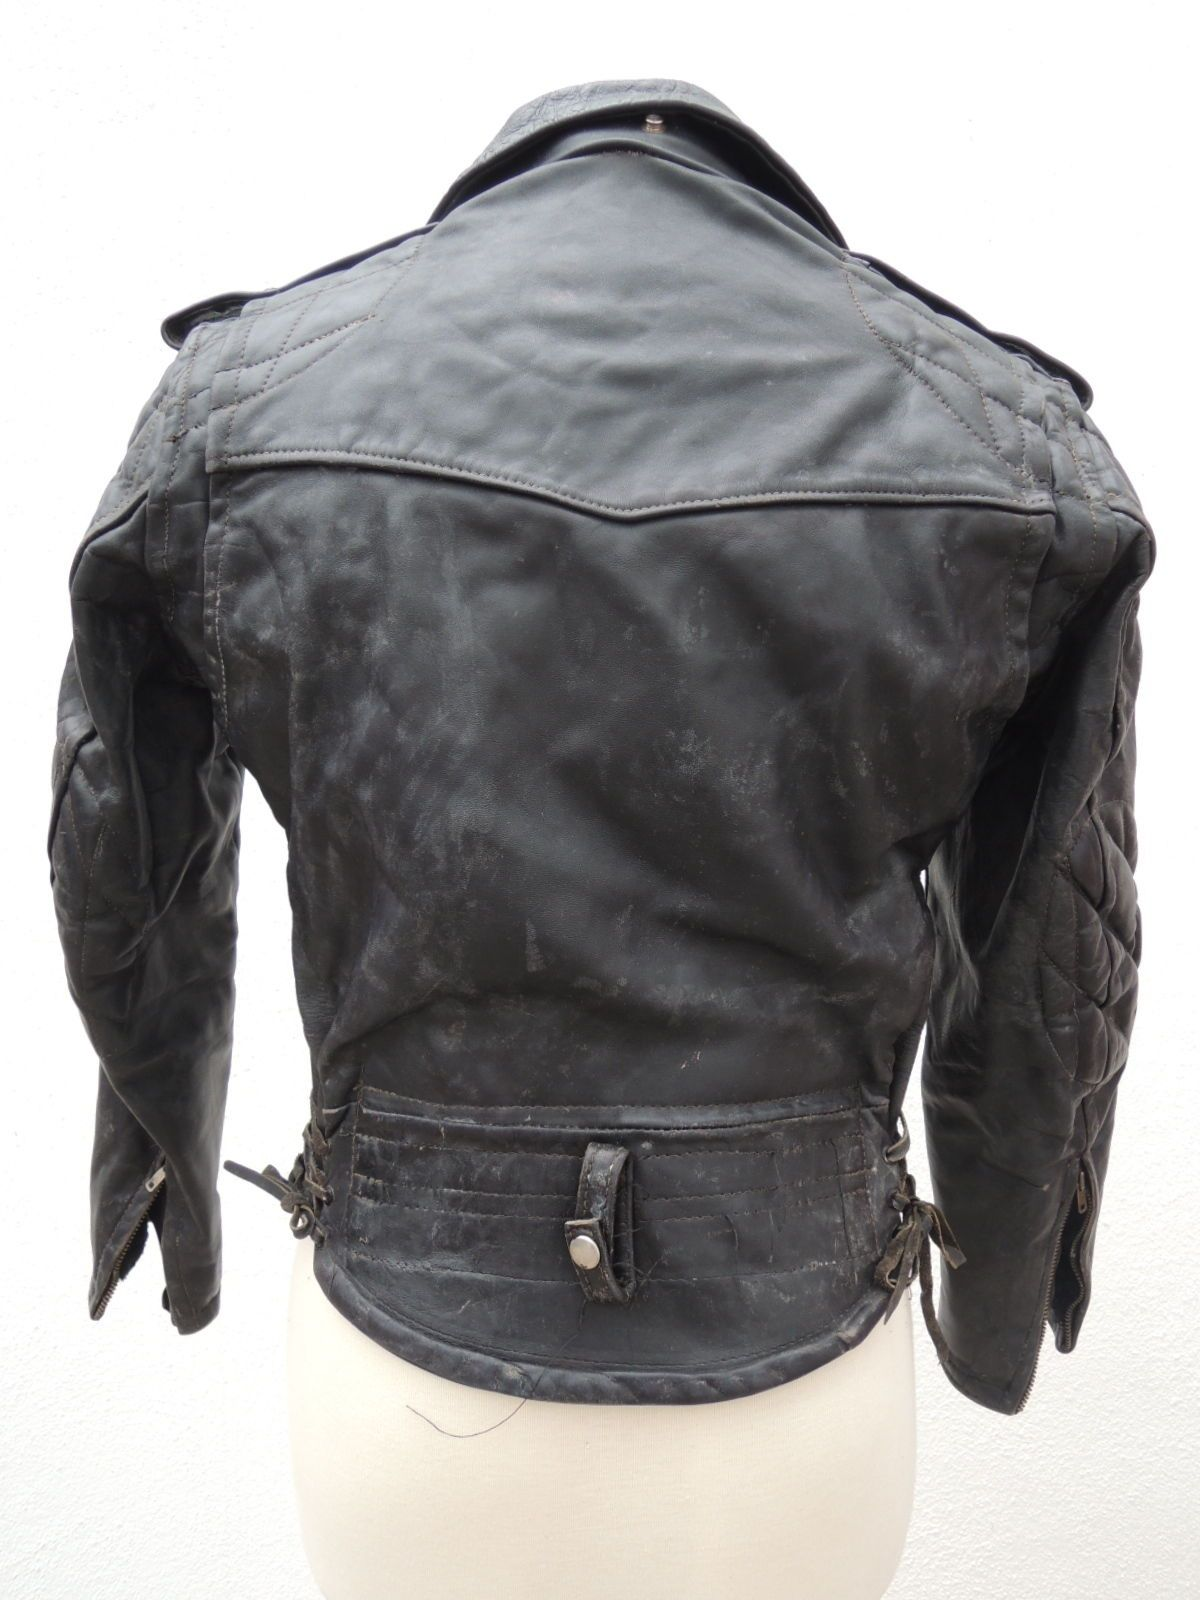 Cal Leather Lapd Padded Jacket Here S The Back Wow What An Epic Design Vintage Leather Jacket Leather Leather Jacket [ 1600 x 1200 Pixel ]